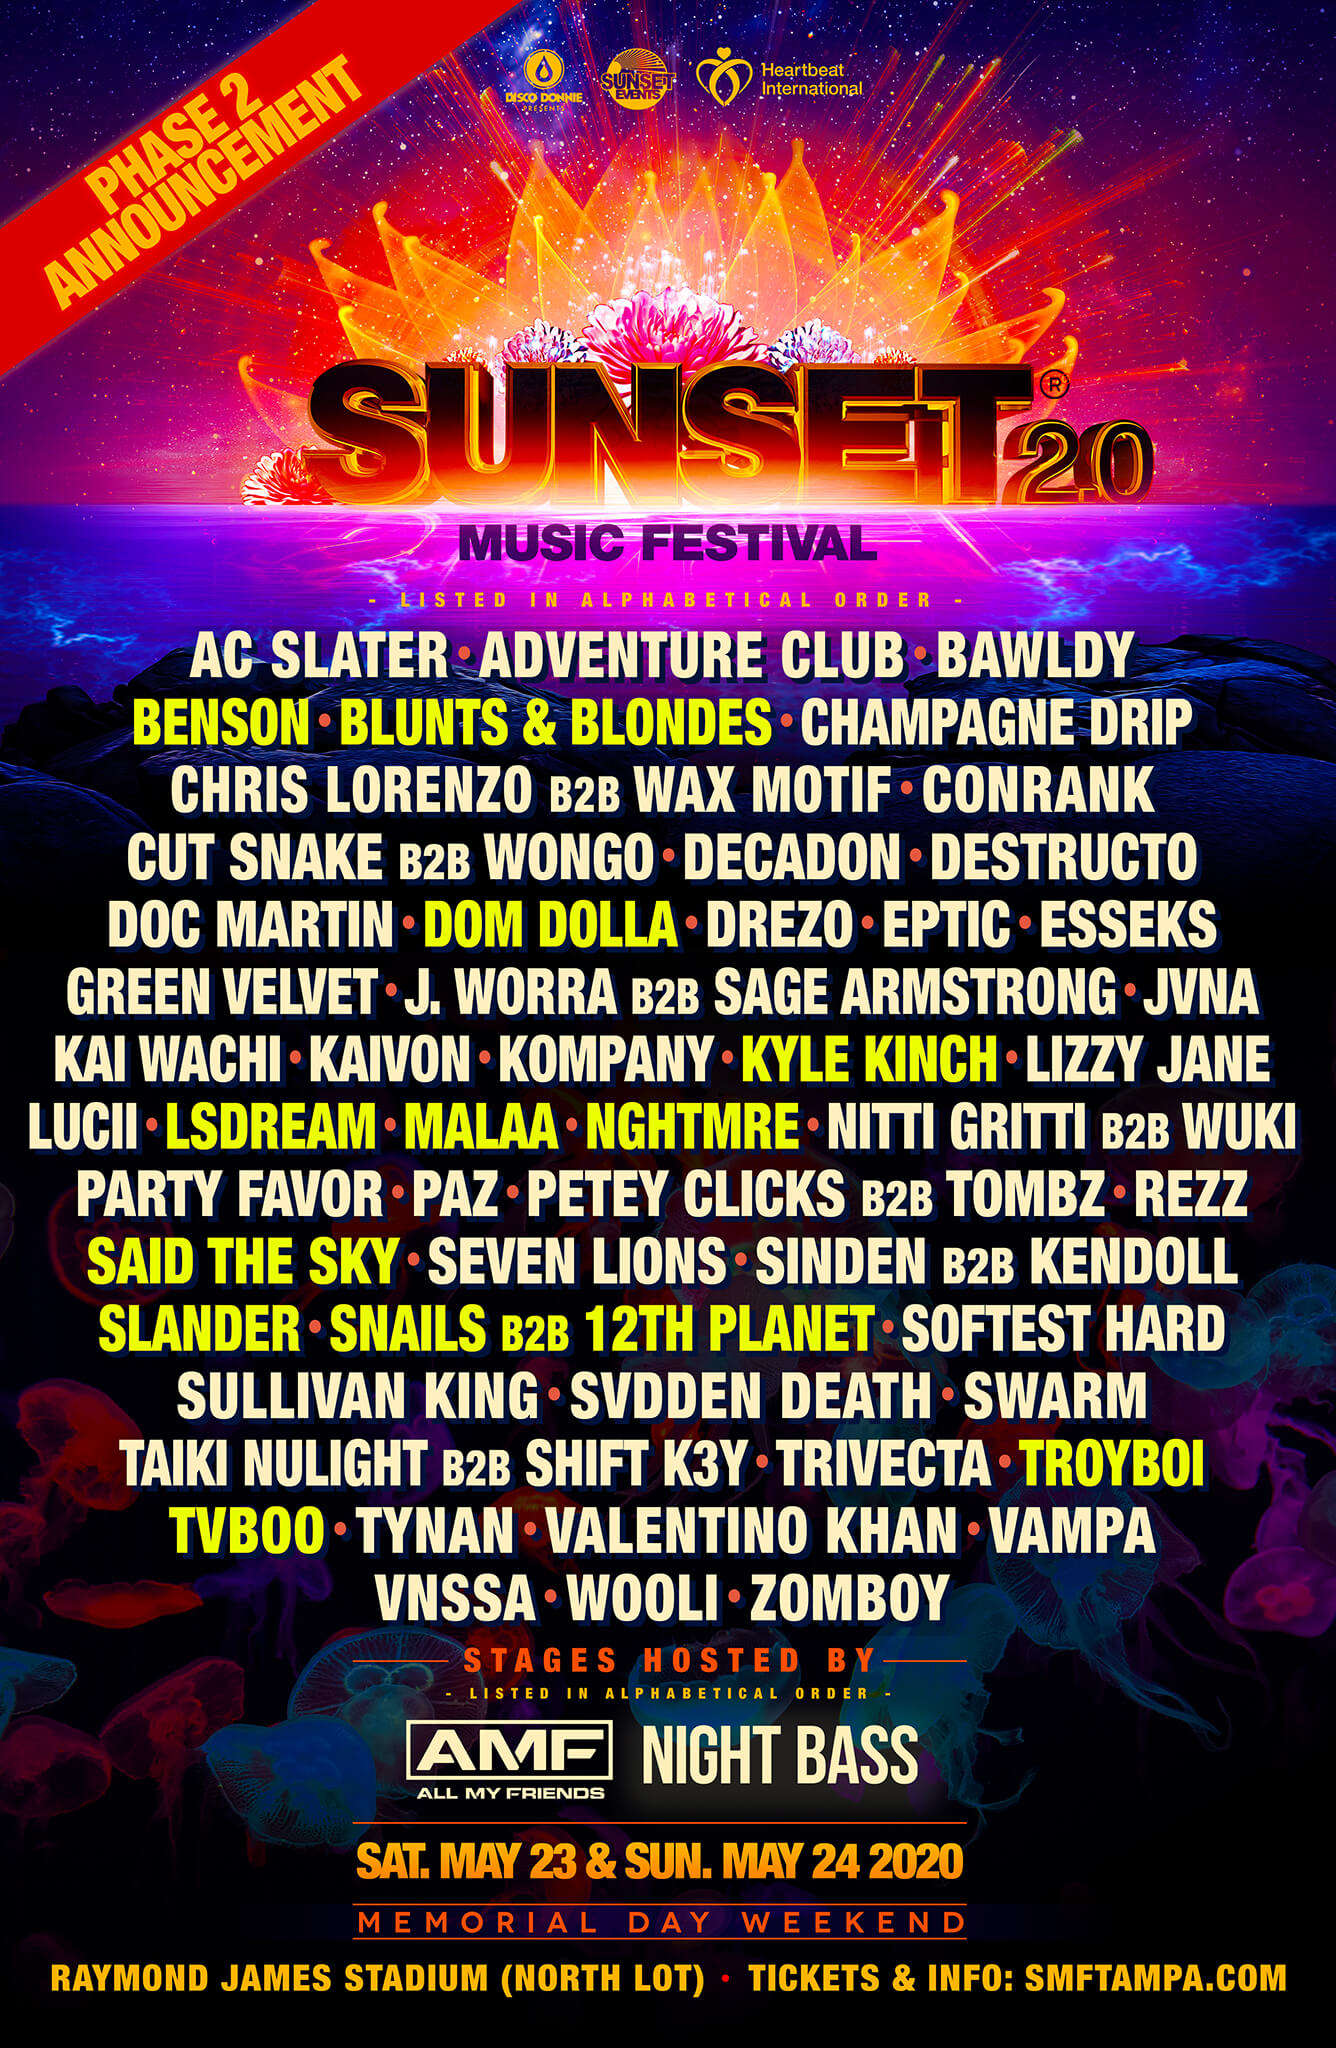 Sunset Music Festival 2020 Phase 2 Lineup